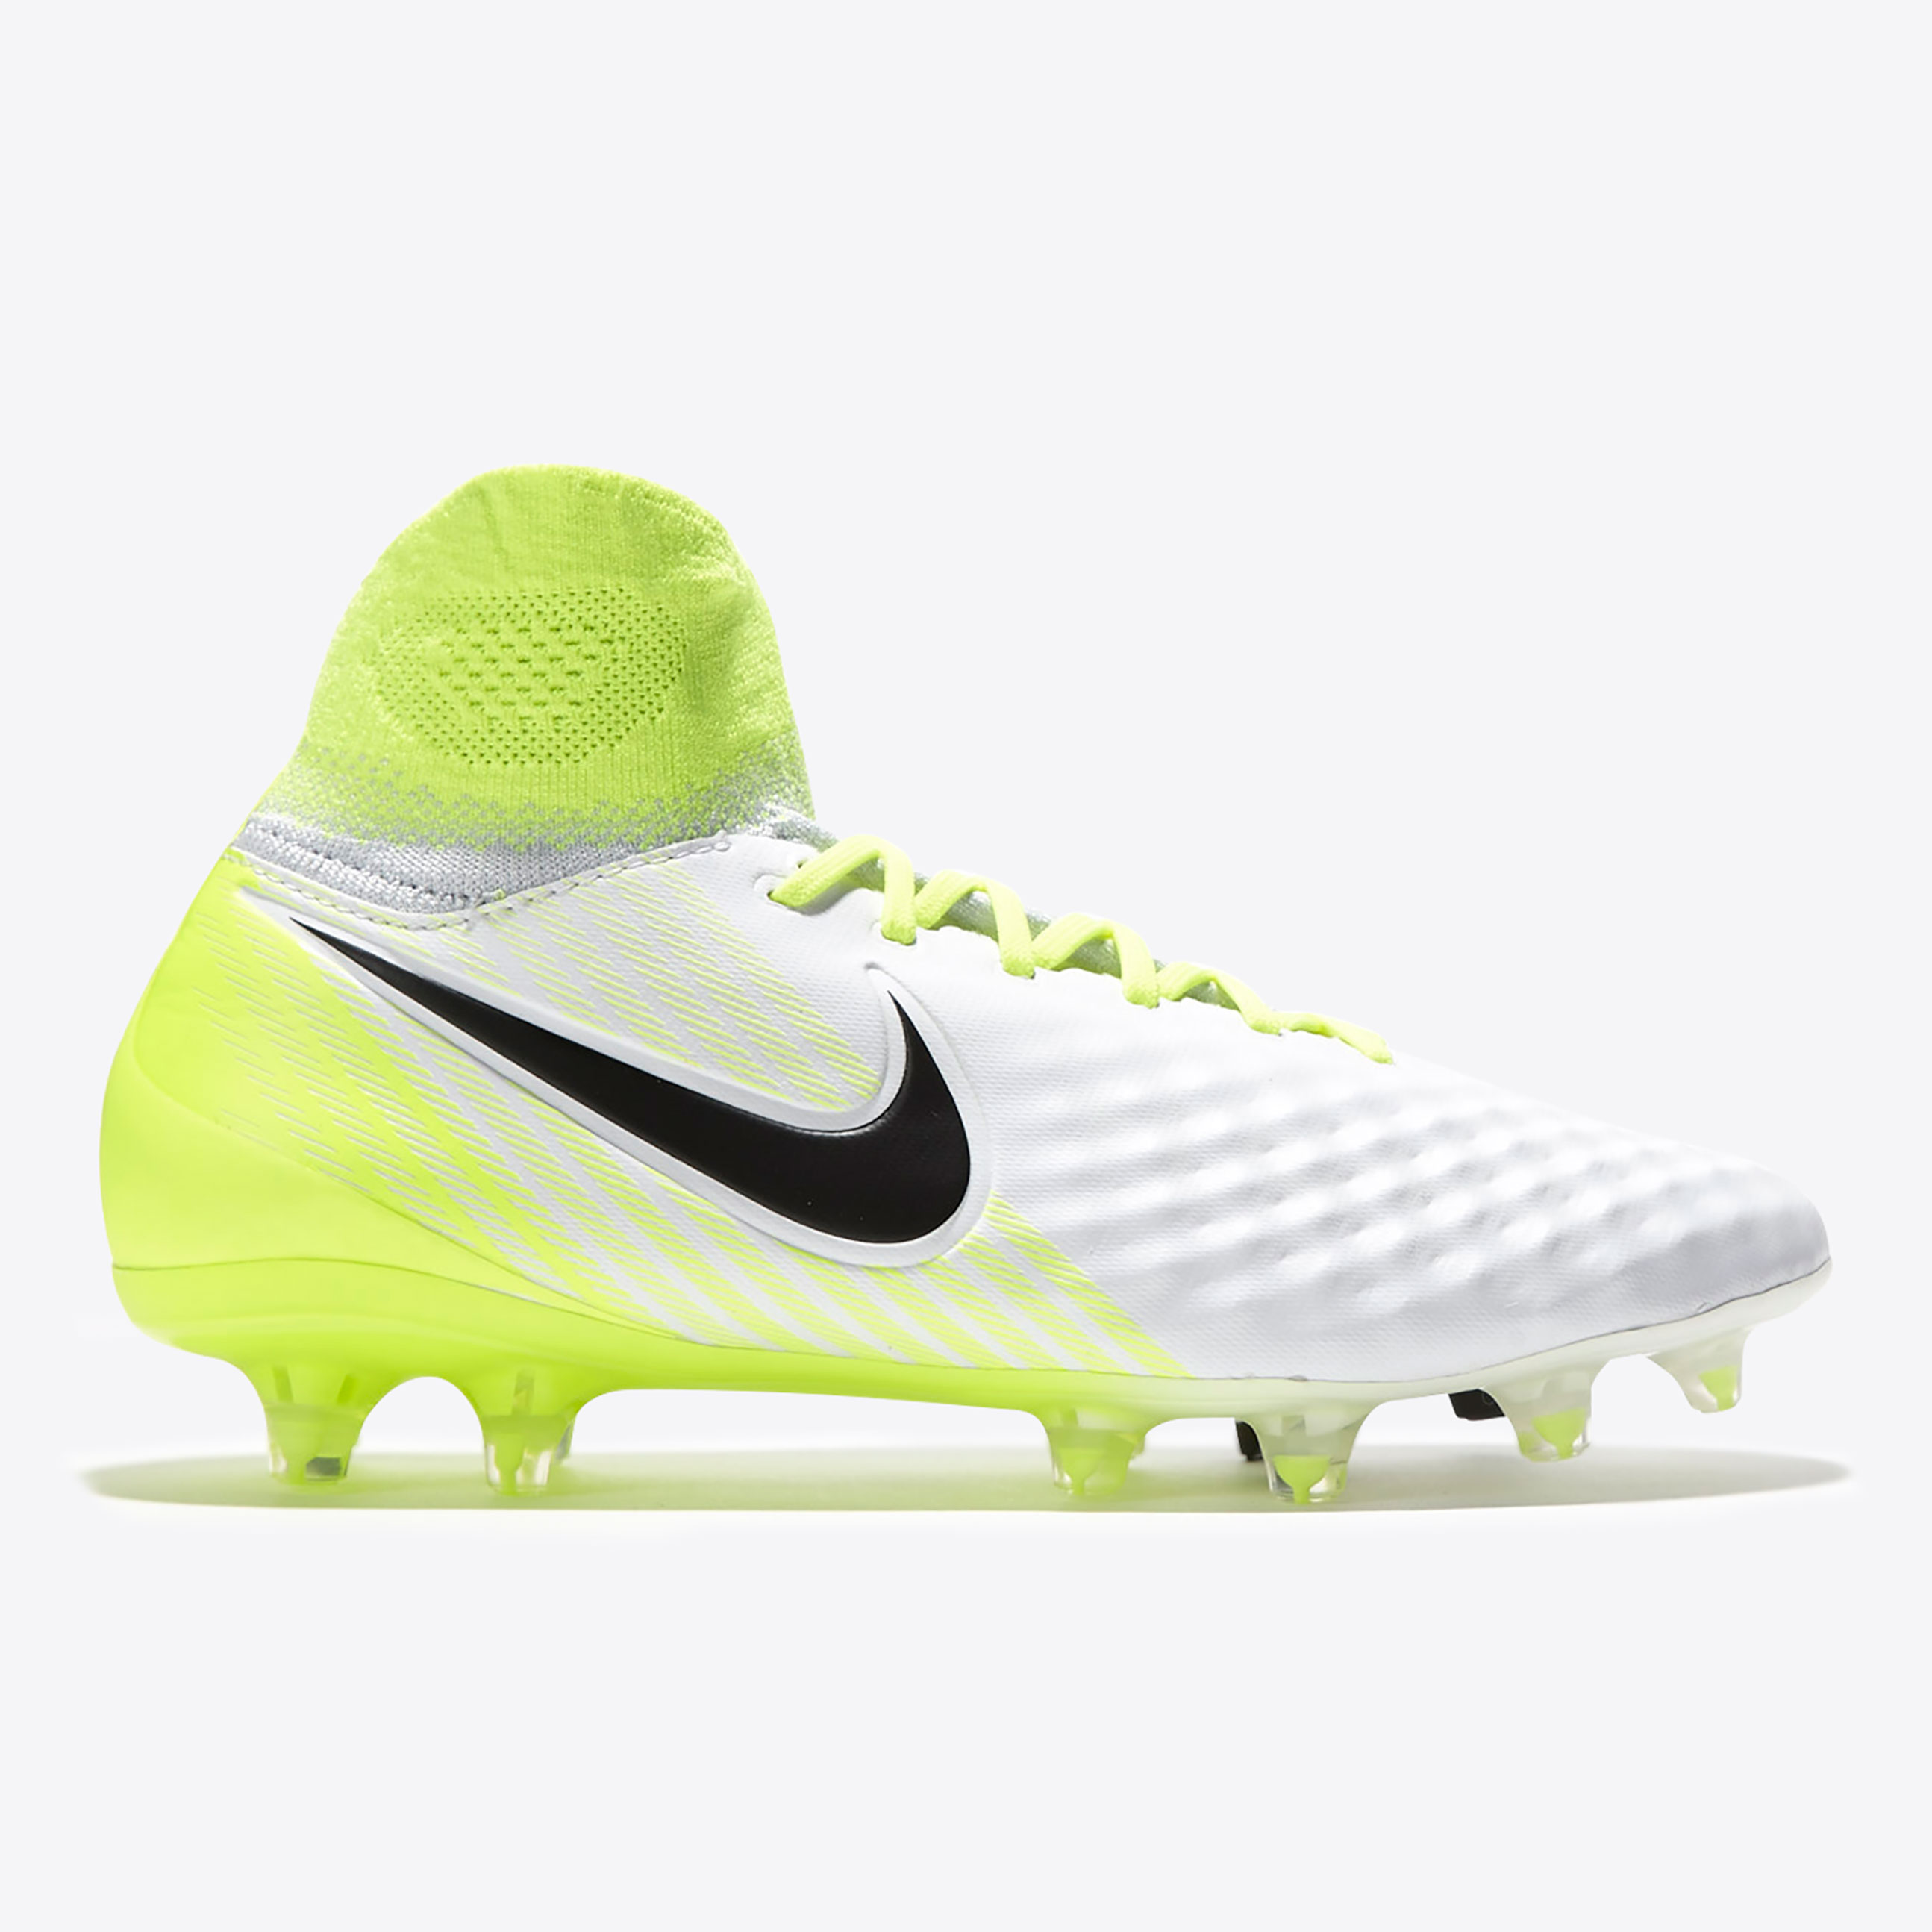 Buy Nike Magista Obra and Opus Rugby Boots - compare prices 597a90eb70